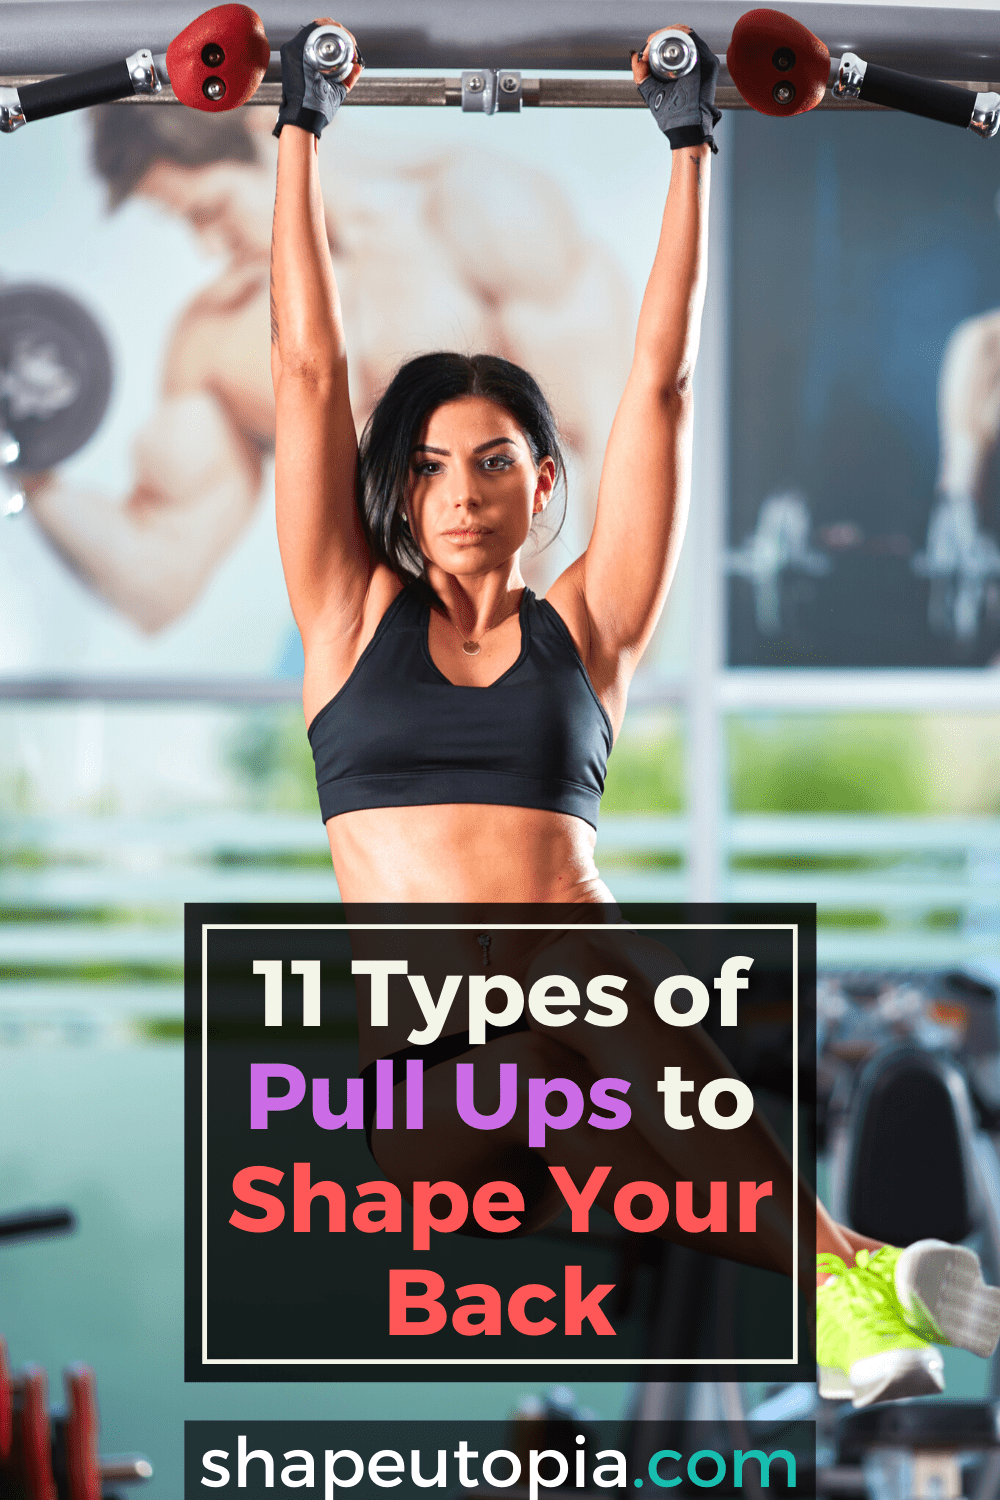 11 Different Types of Pull Ups to Shape Your Back